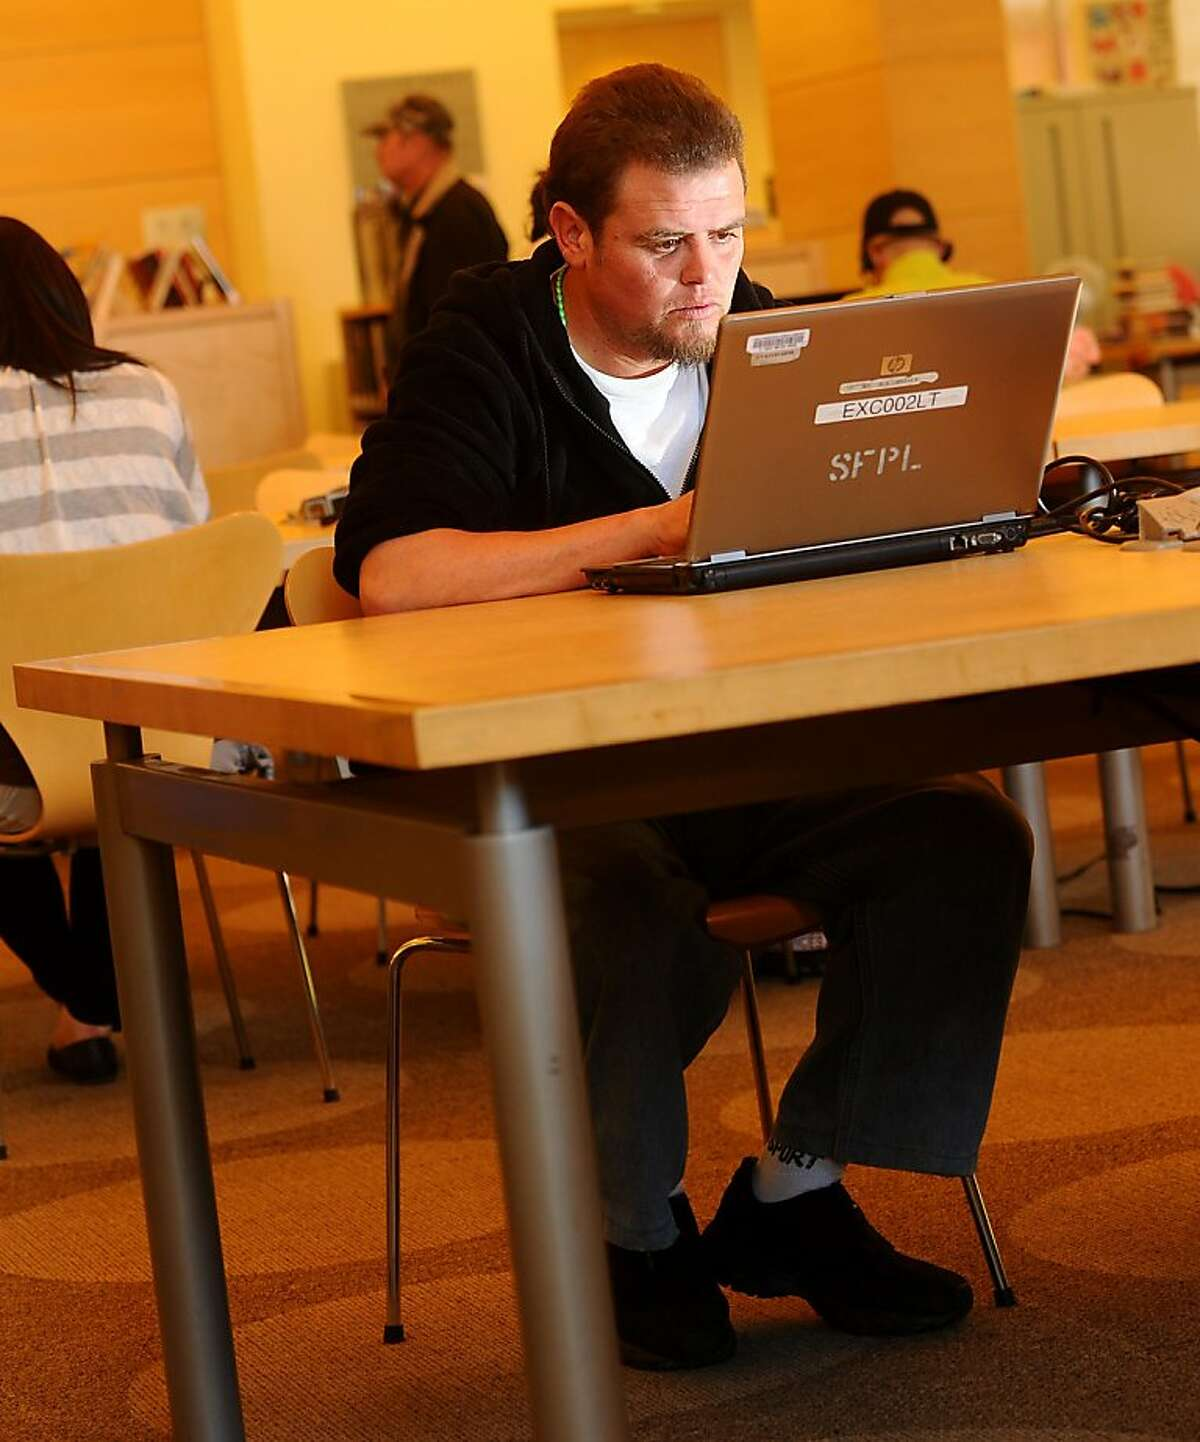 Ivan Anzueto uses a borrowed laptop at the San Francisco Public Library's Excelsior branch on Thursday, June 23, 2011, in San Francisco. Anzueto, who does not have a computer at home, used the laptop to search craigslist for jobs.